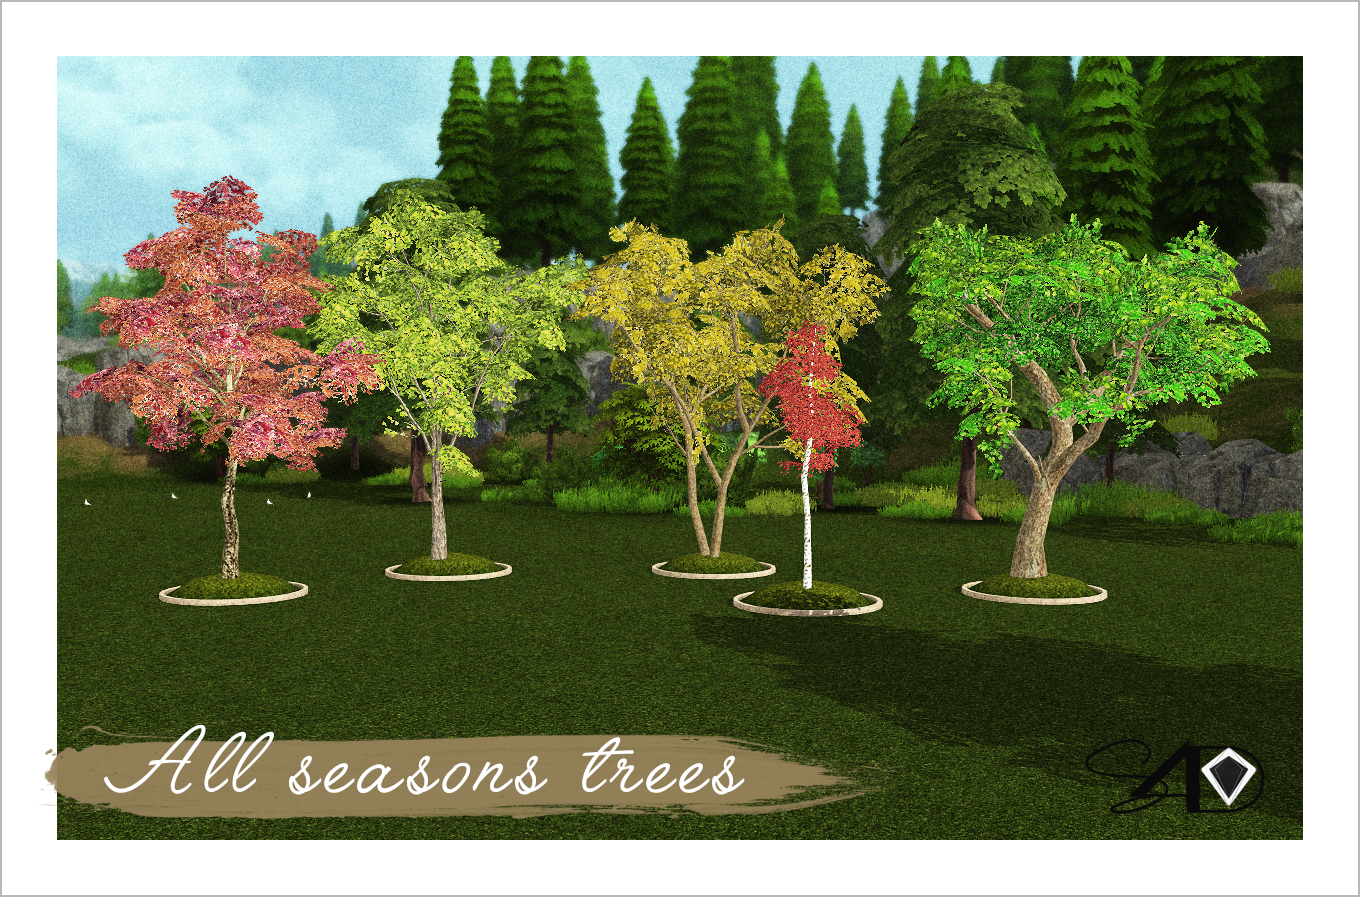 All Seasons My Sims 4 Blog All Seasons Trees By Daer0n